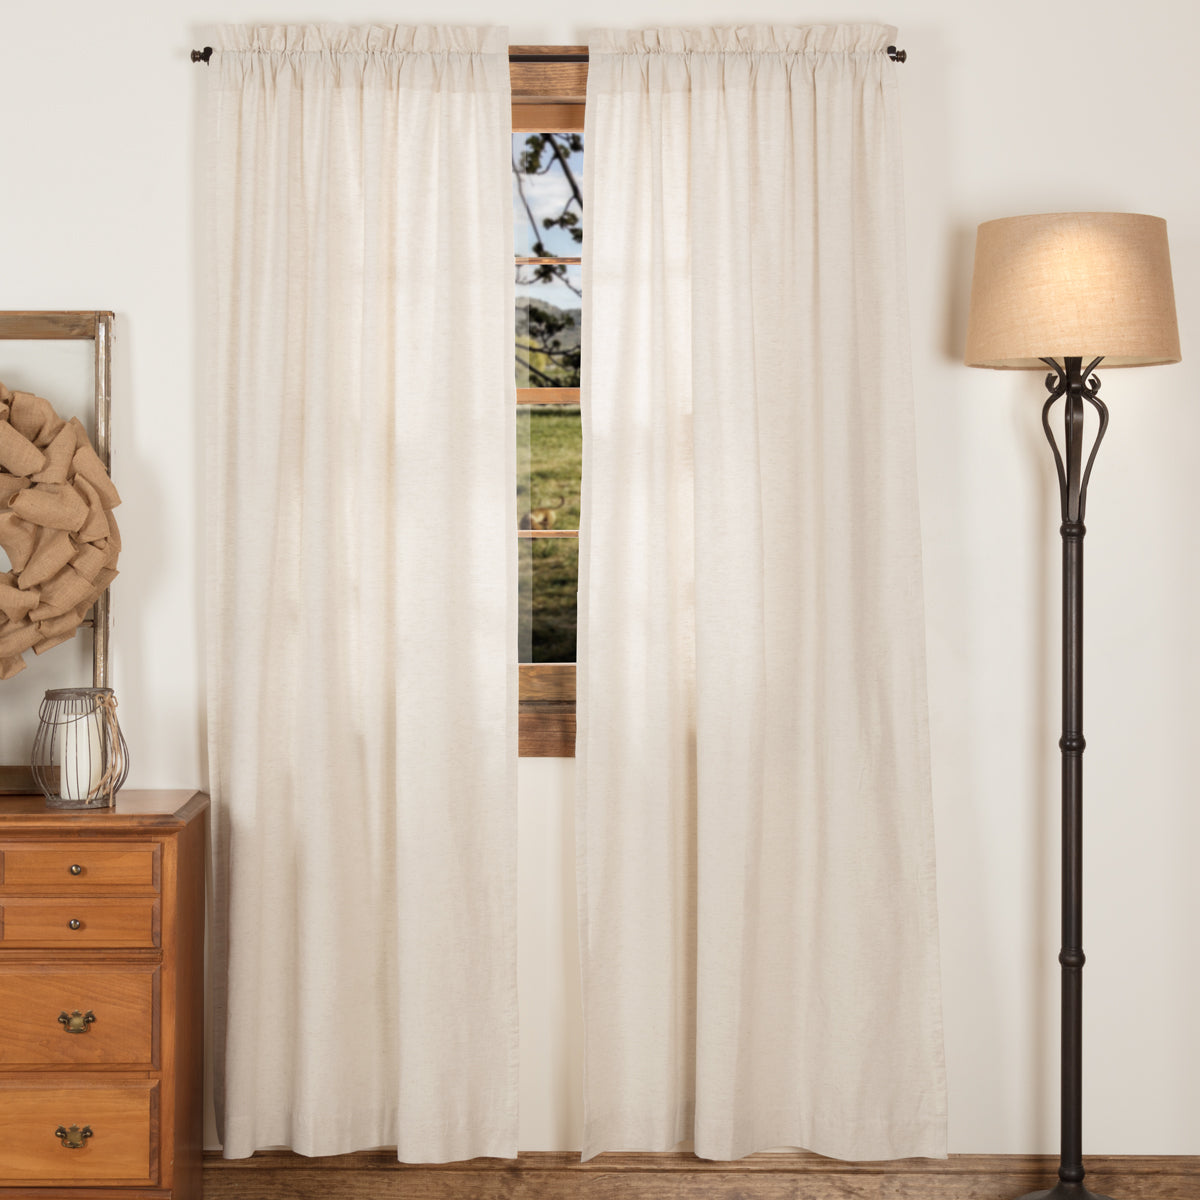 Simple Life Flax Natural Panel Set of 2 84x40 - Woodrol